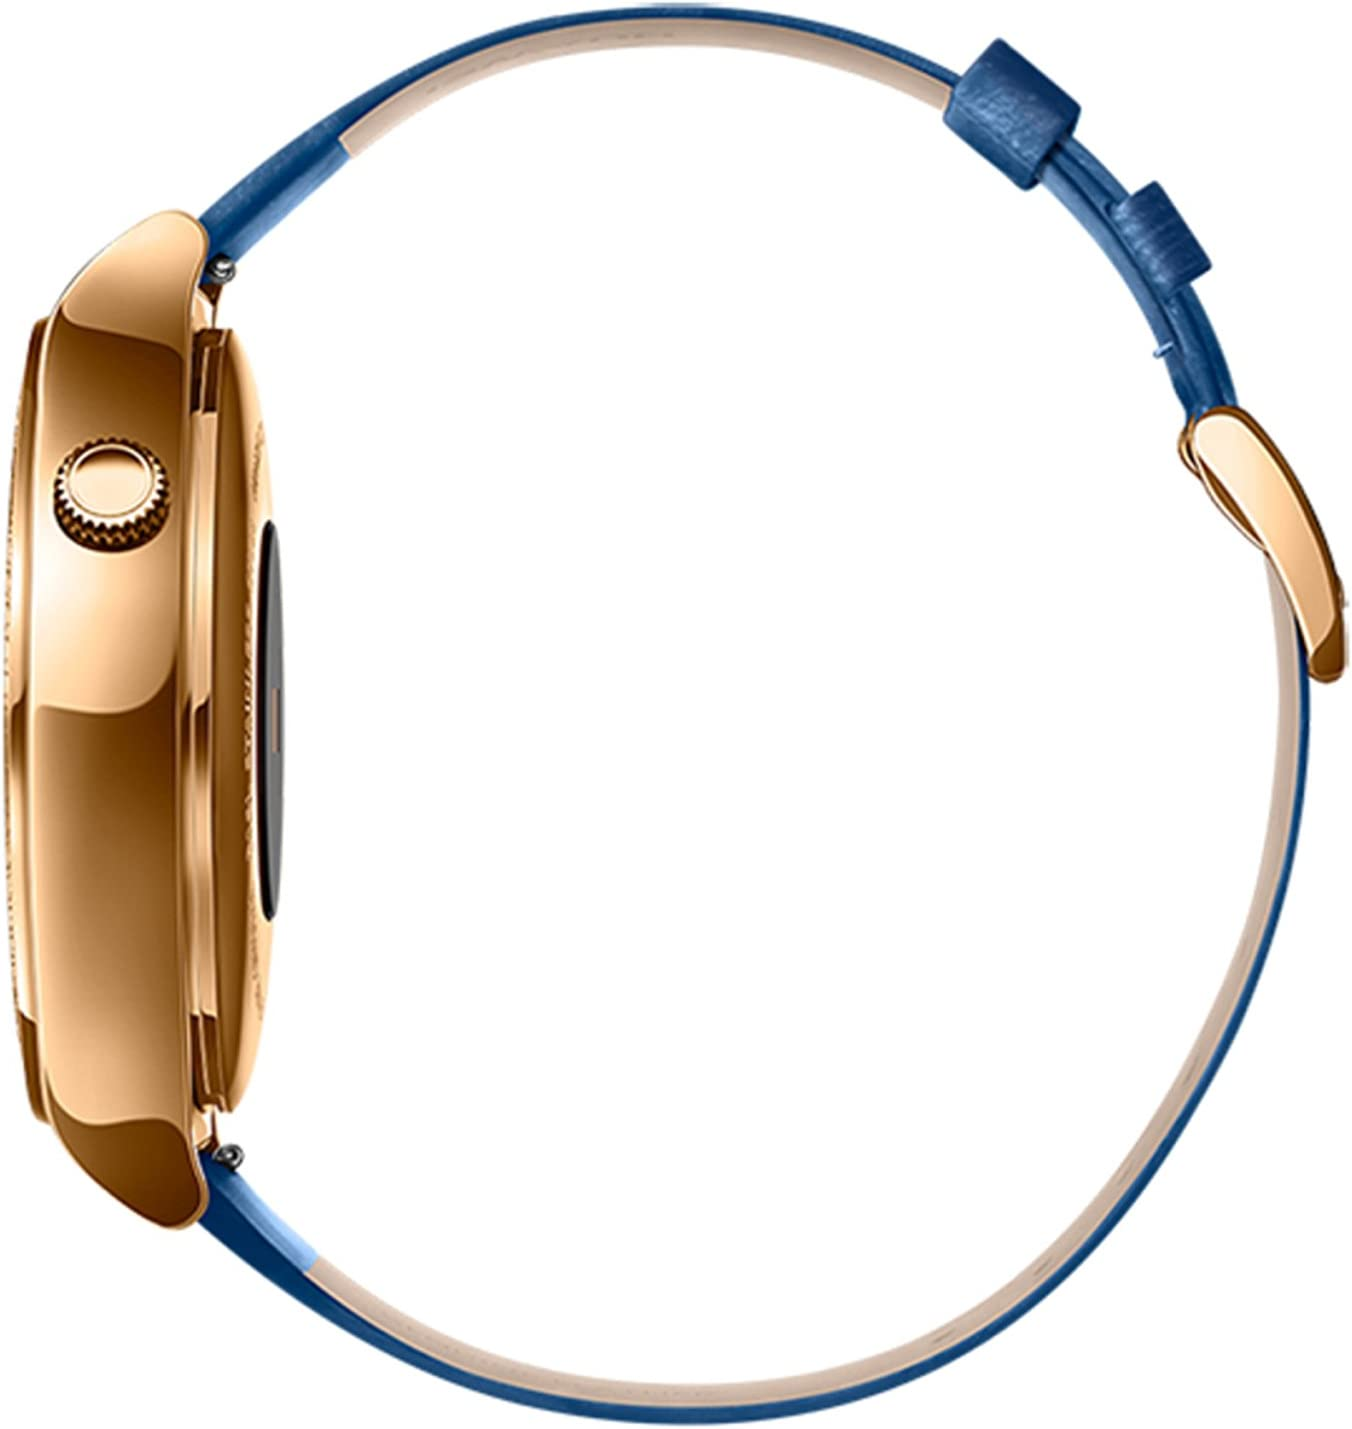 Huawei Smartwatch for iPhone, Android Smartphones - Retail Packaging - Gold/Sapphire